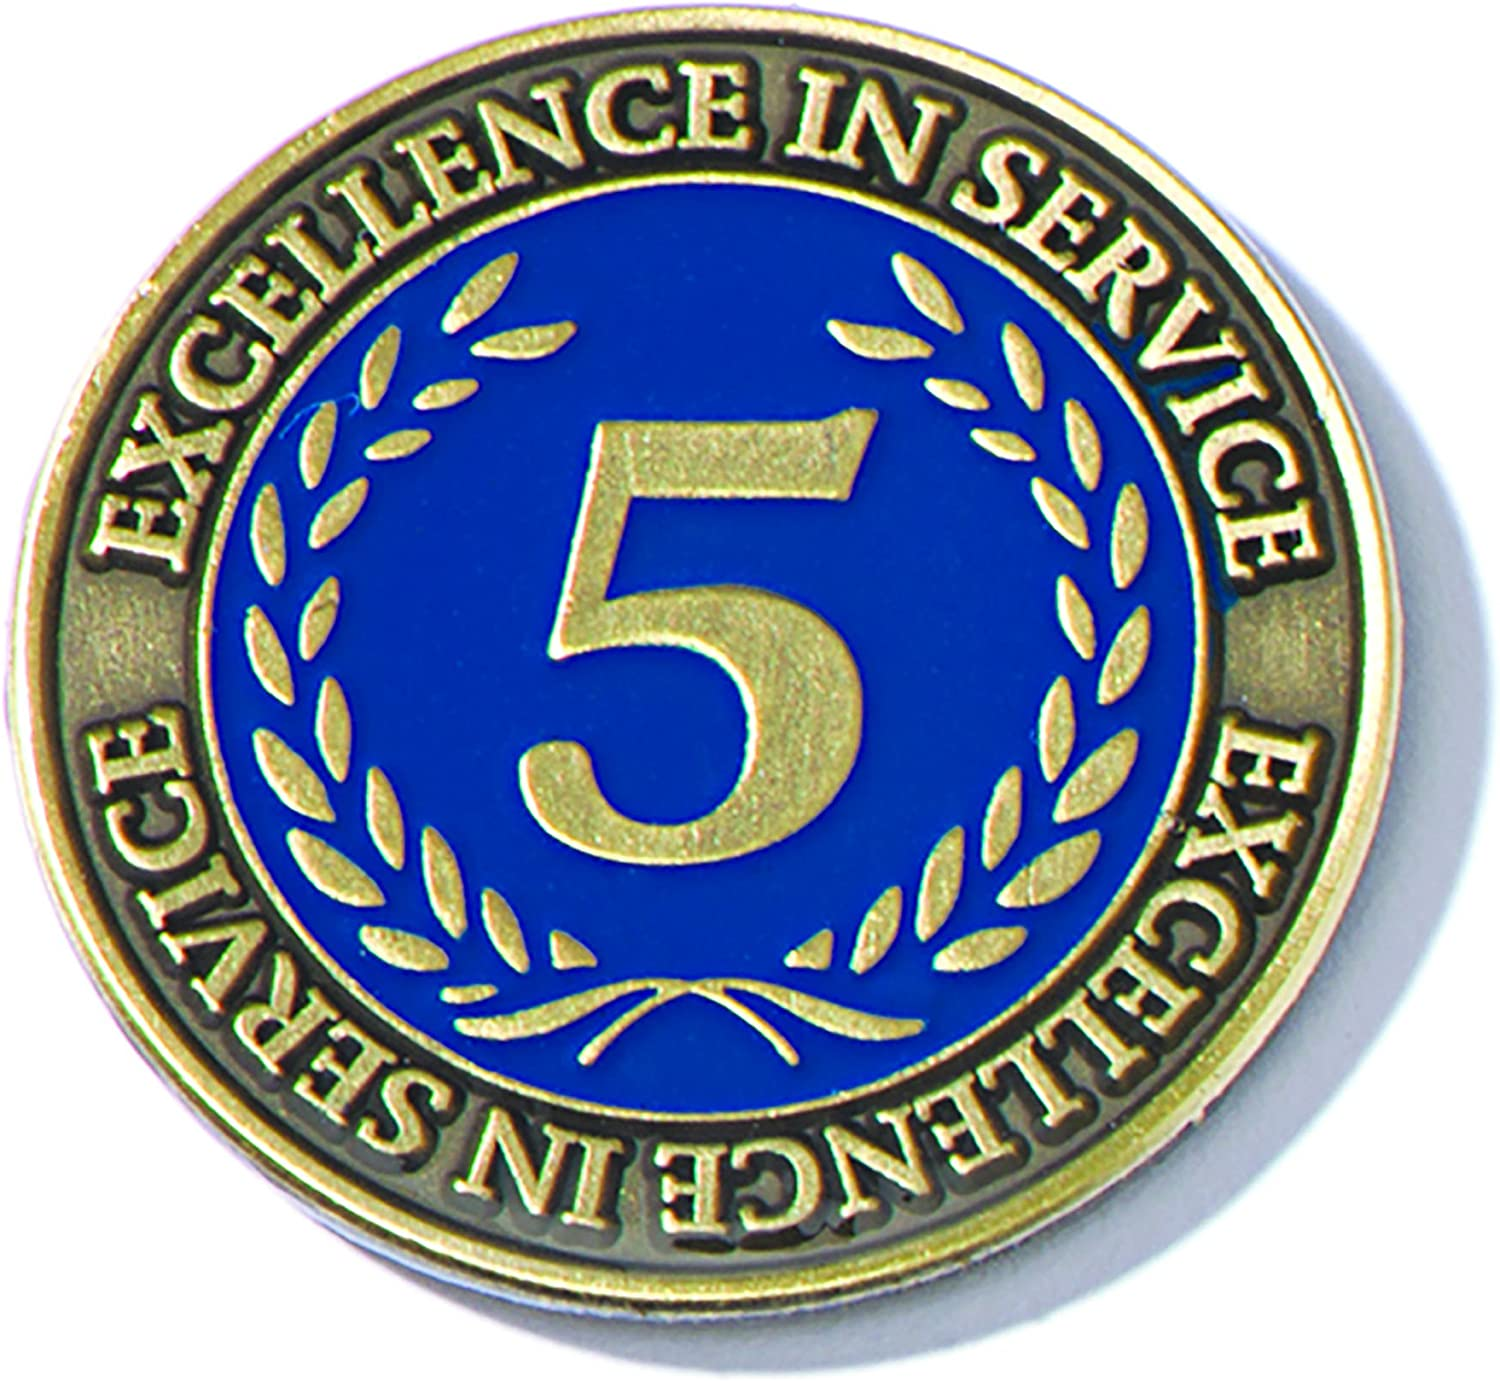 TCDesignerProducts 5 Year Excellence in Service Gold Laurel Award Pin